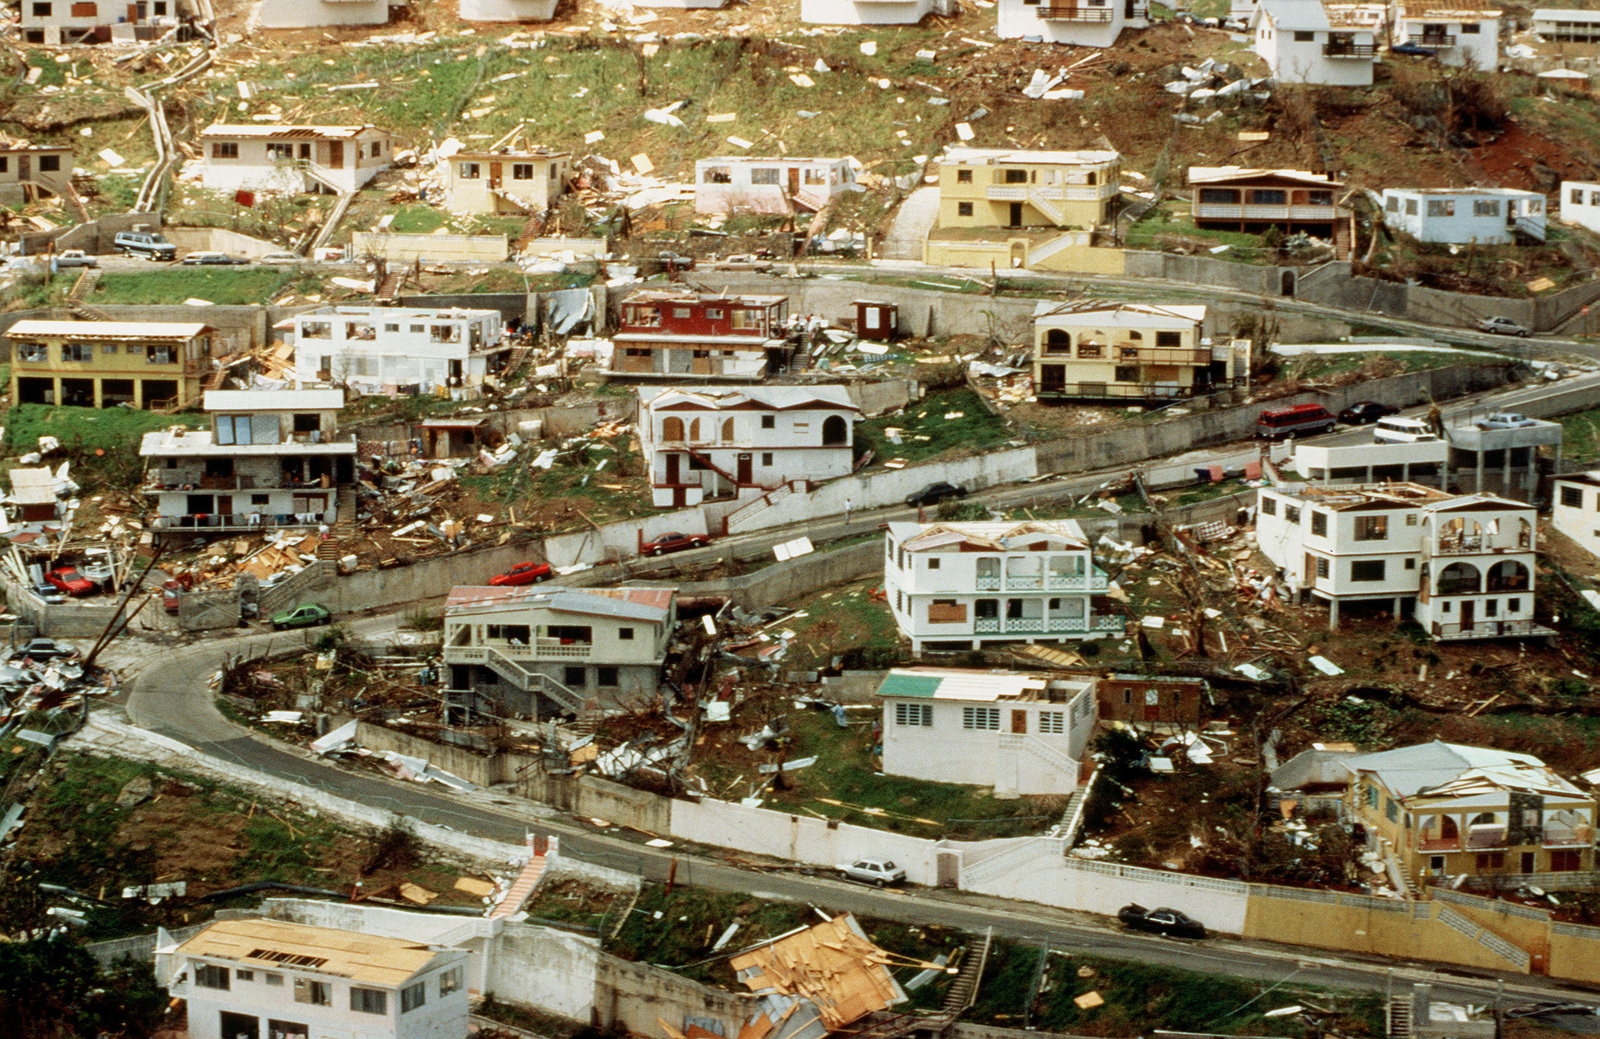 The debris and devastation scattered across St. Thomas from Hurricane Marilyn is visible in this photograph. The U.S. Air Force is flying in personnel and relief supplies for victims of Hurricane Marilyn